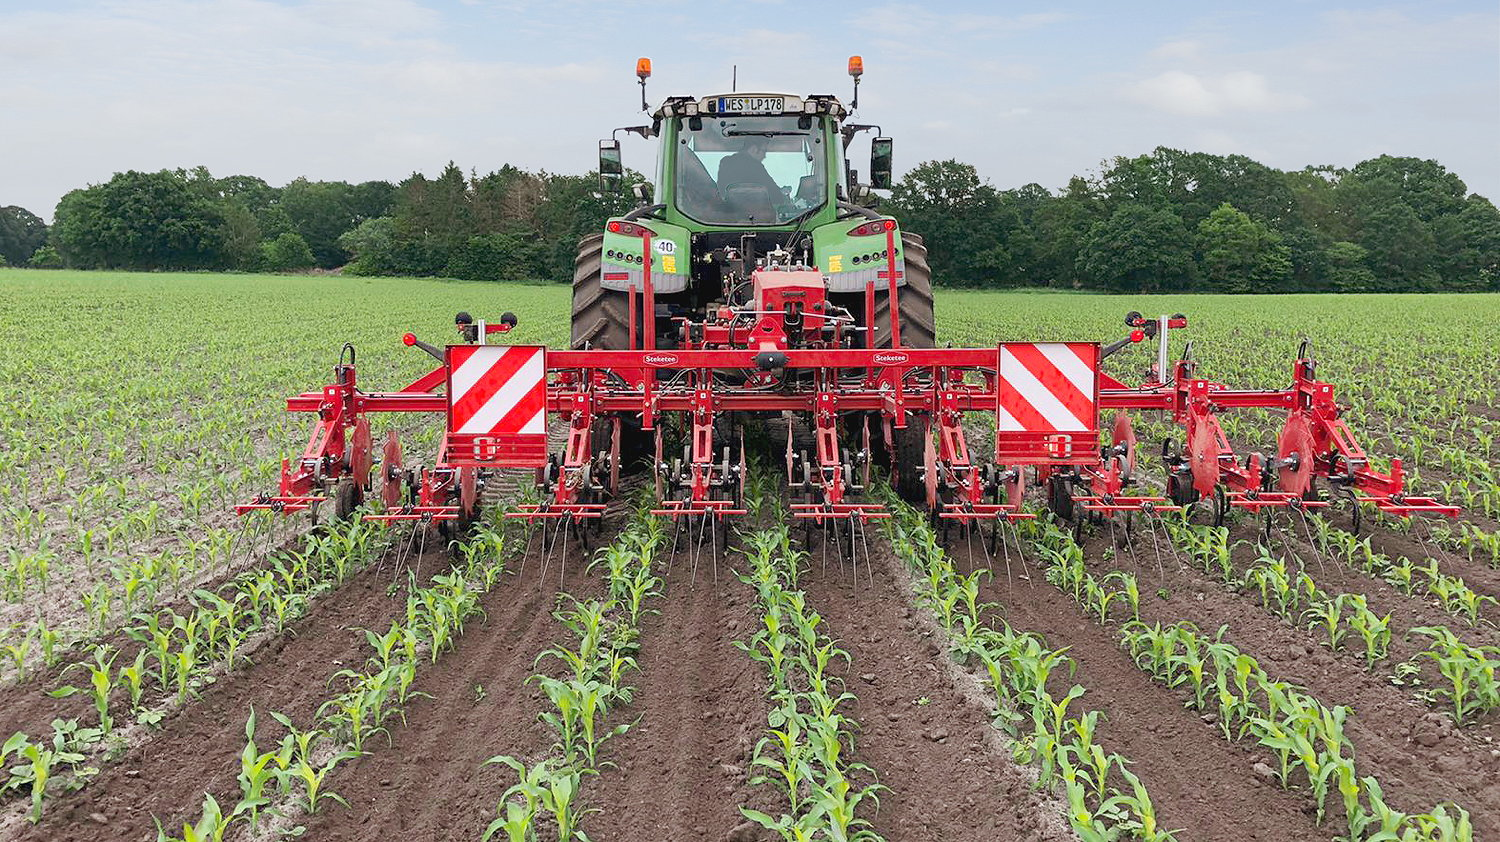 A Steketee EC-Weeder carrying out mechanical weed control with maize DeltaRows